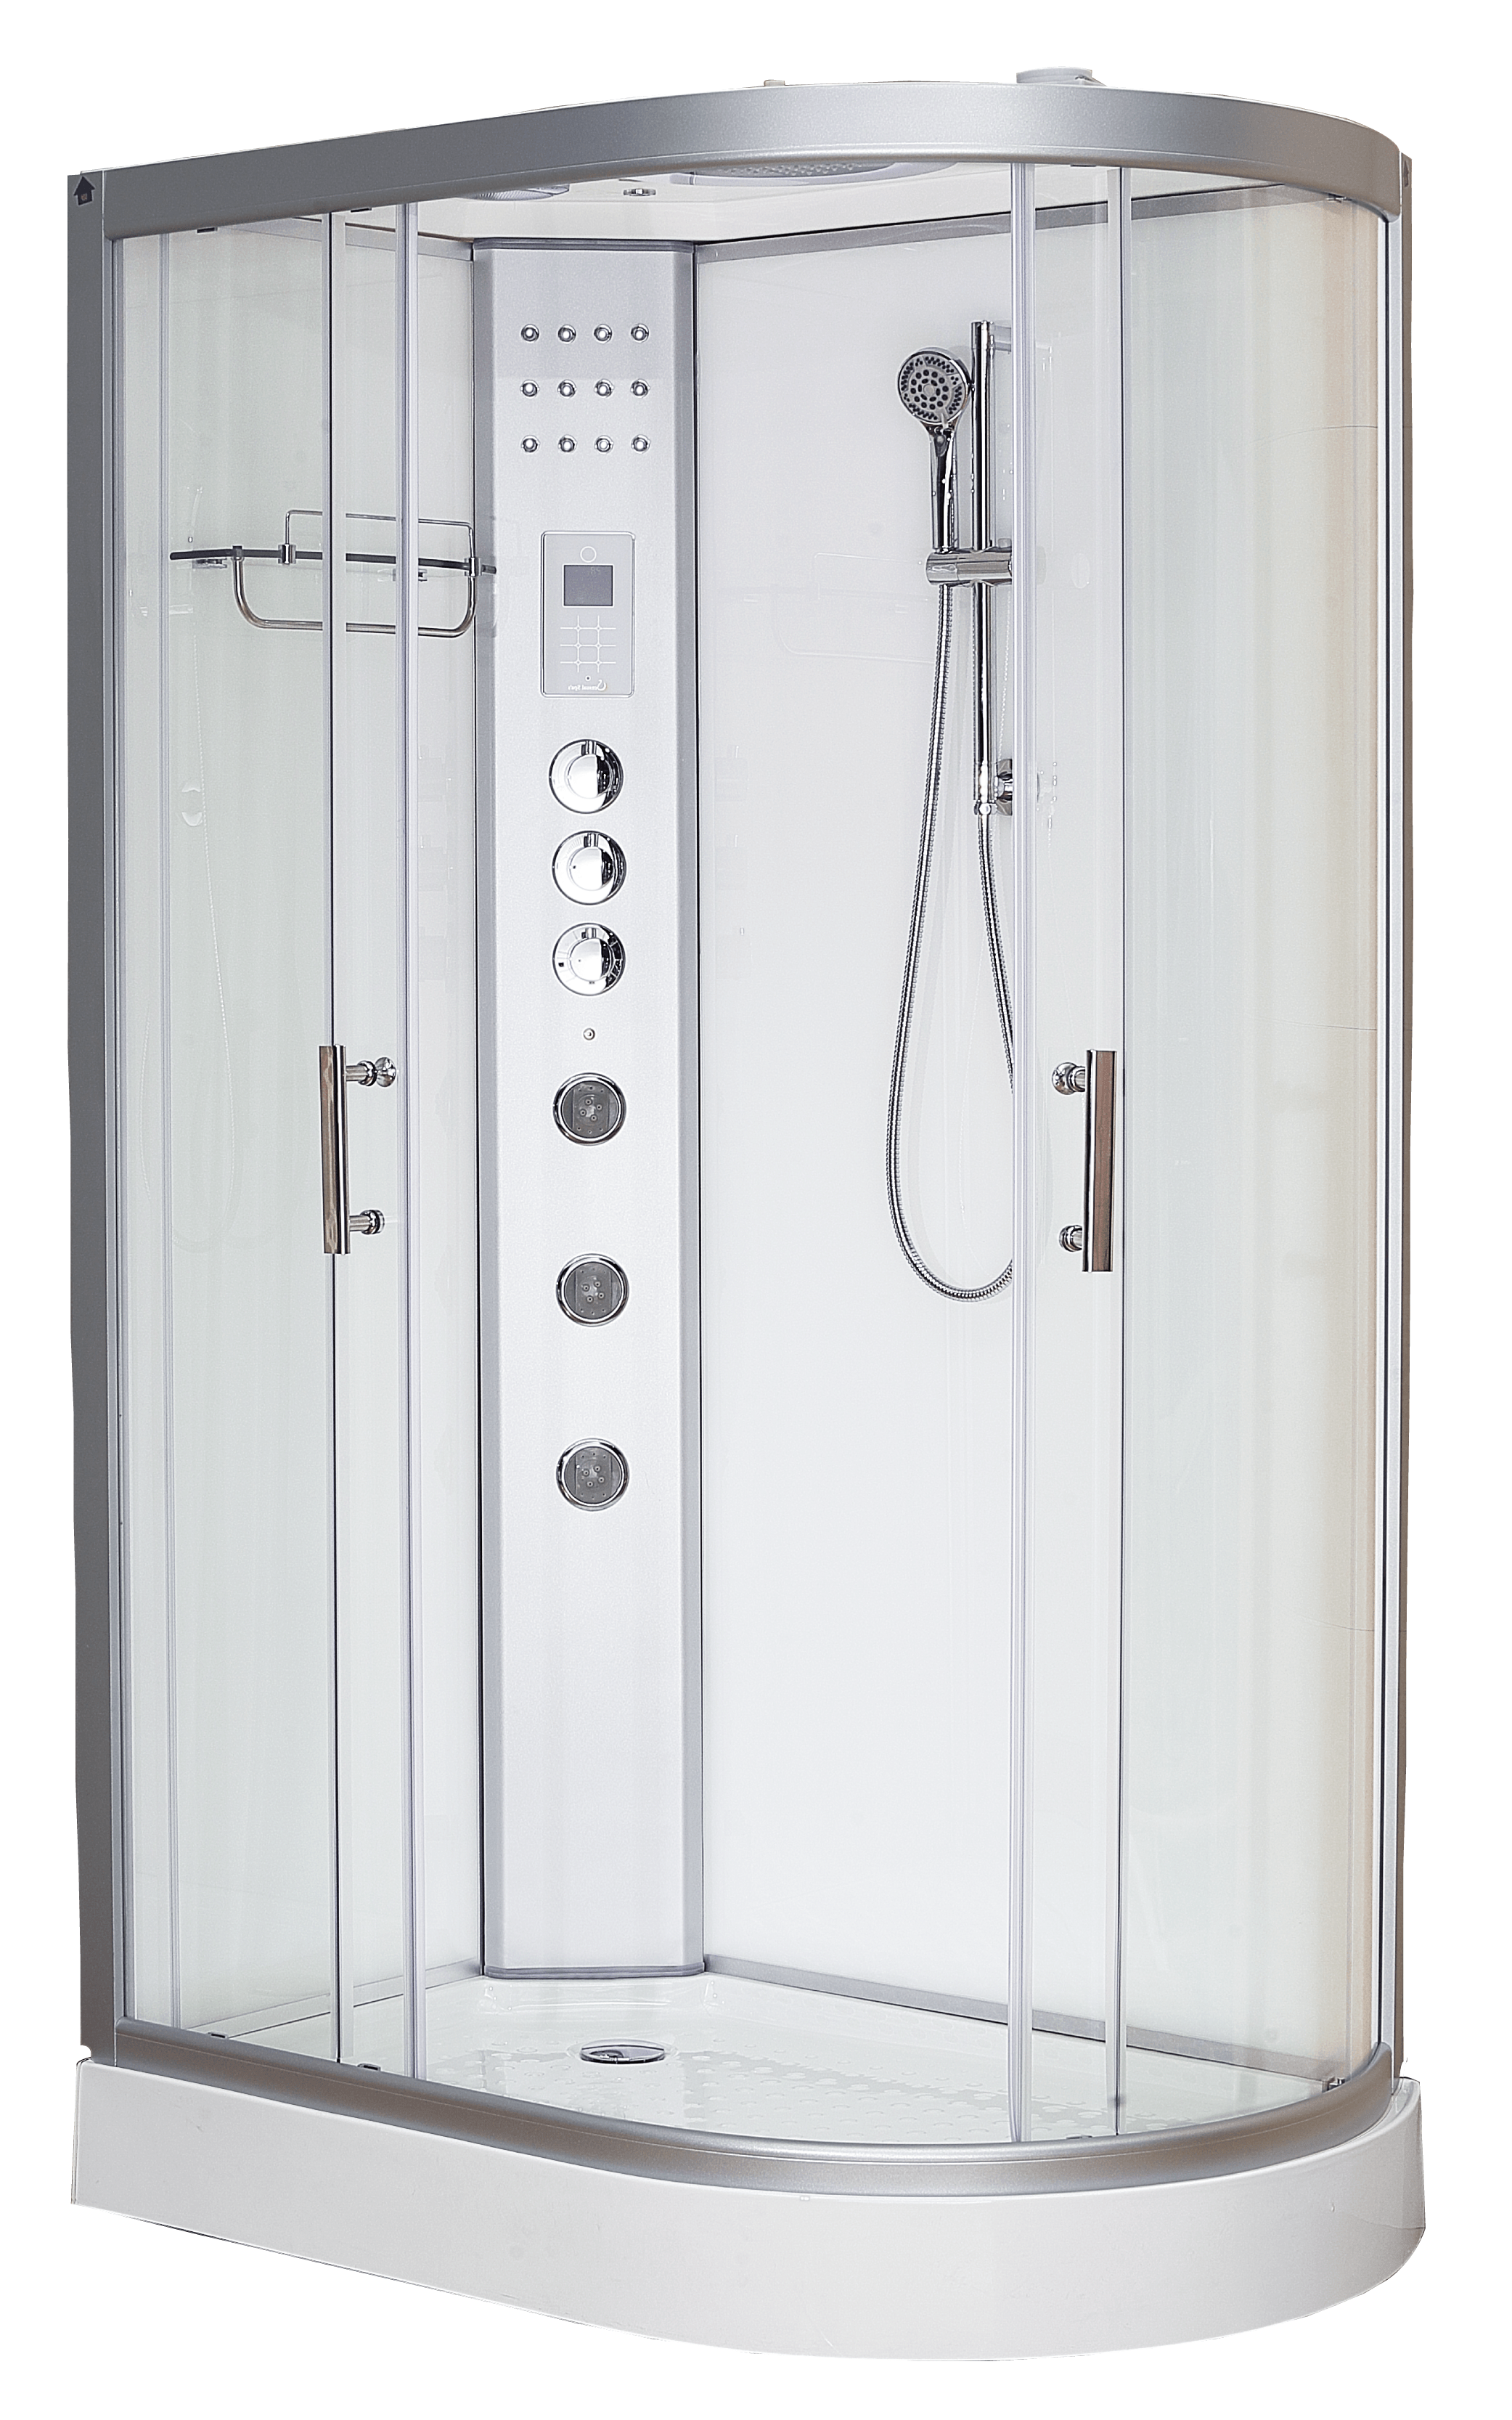 Shower Cabins & Cubicles | Best Showers Prices at August 2018 ...